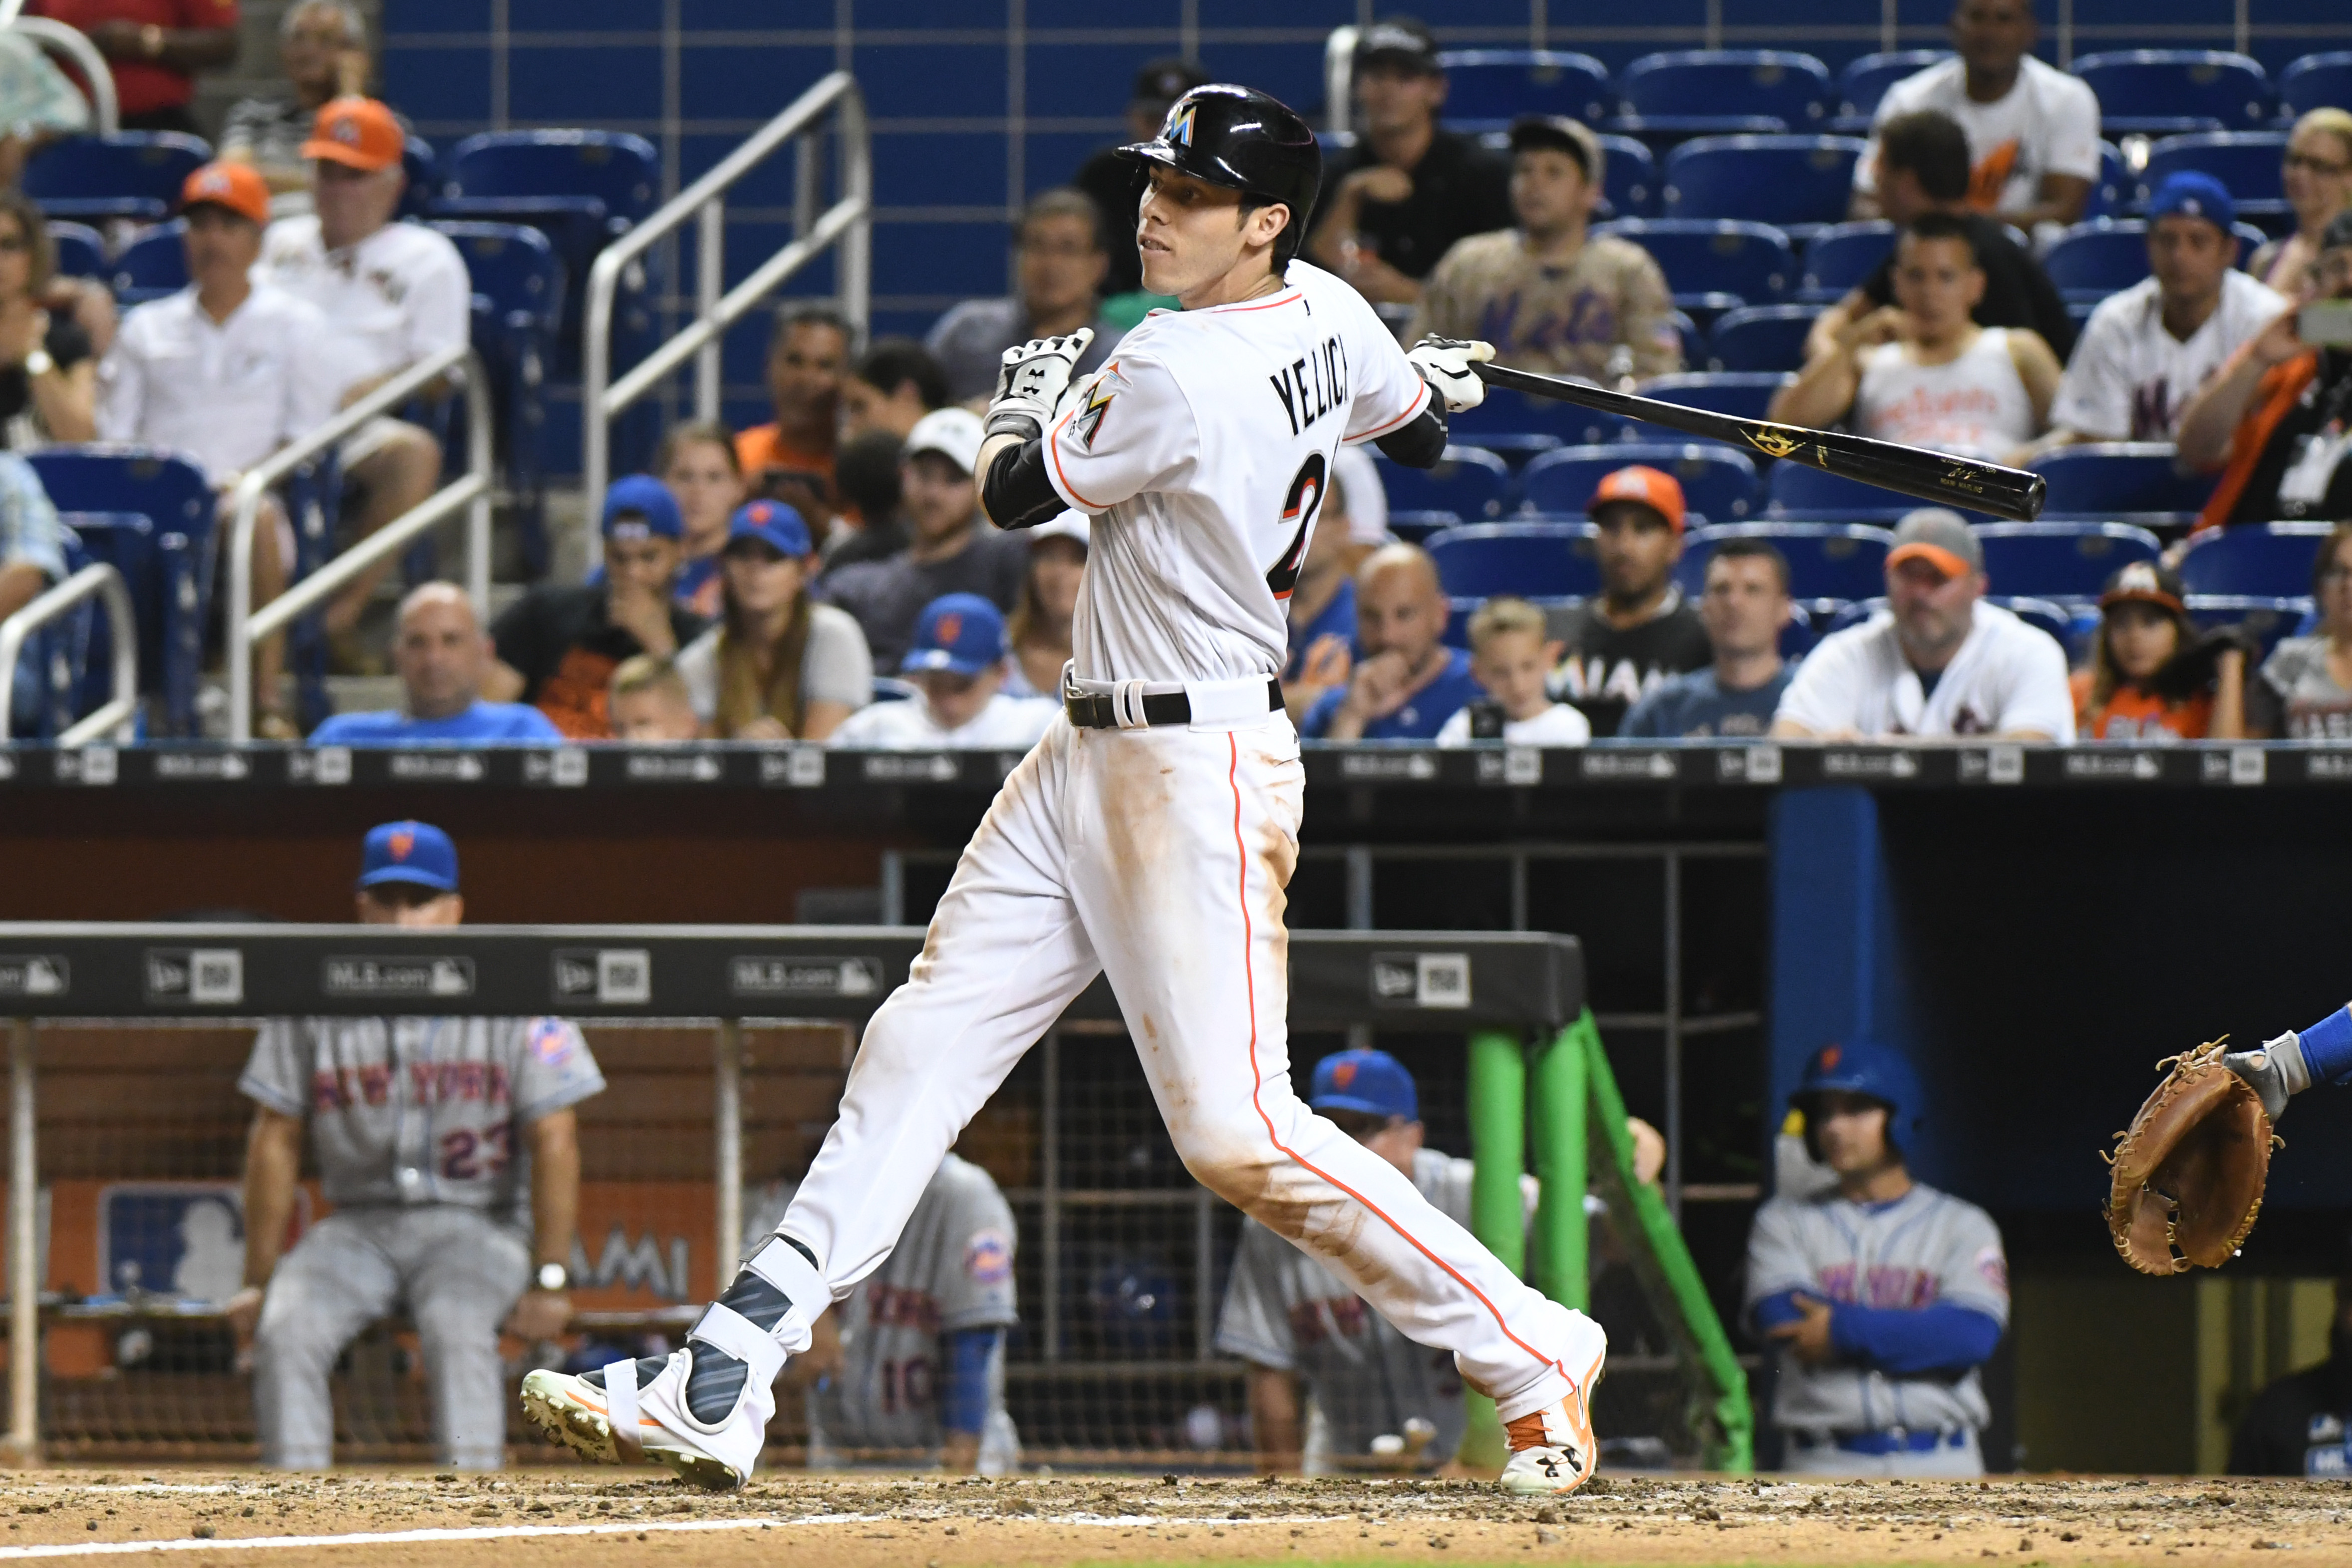 Christian Yelich Is an Under-the-Radar NL MVP Candidate in 2017